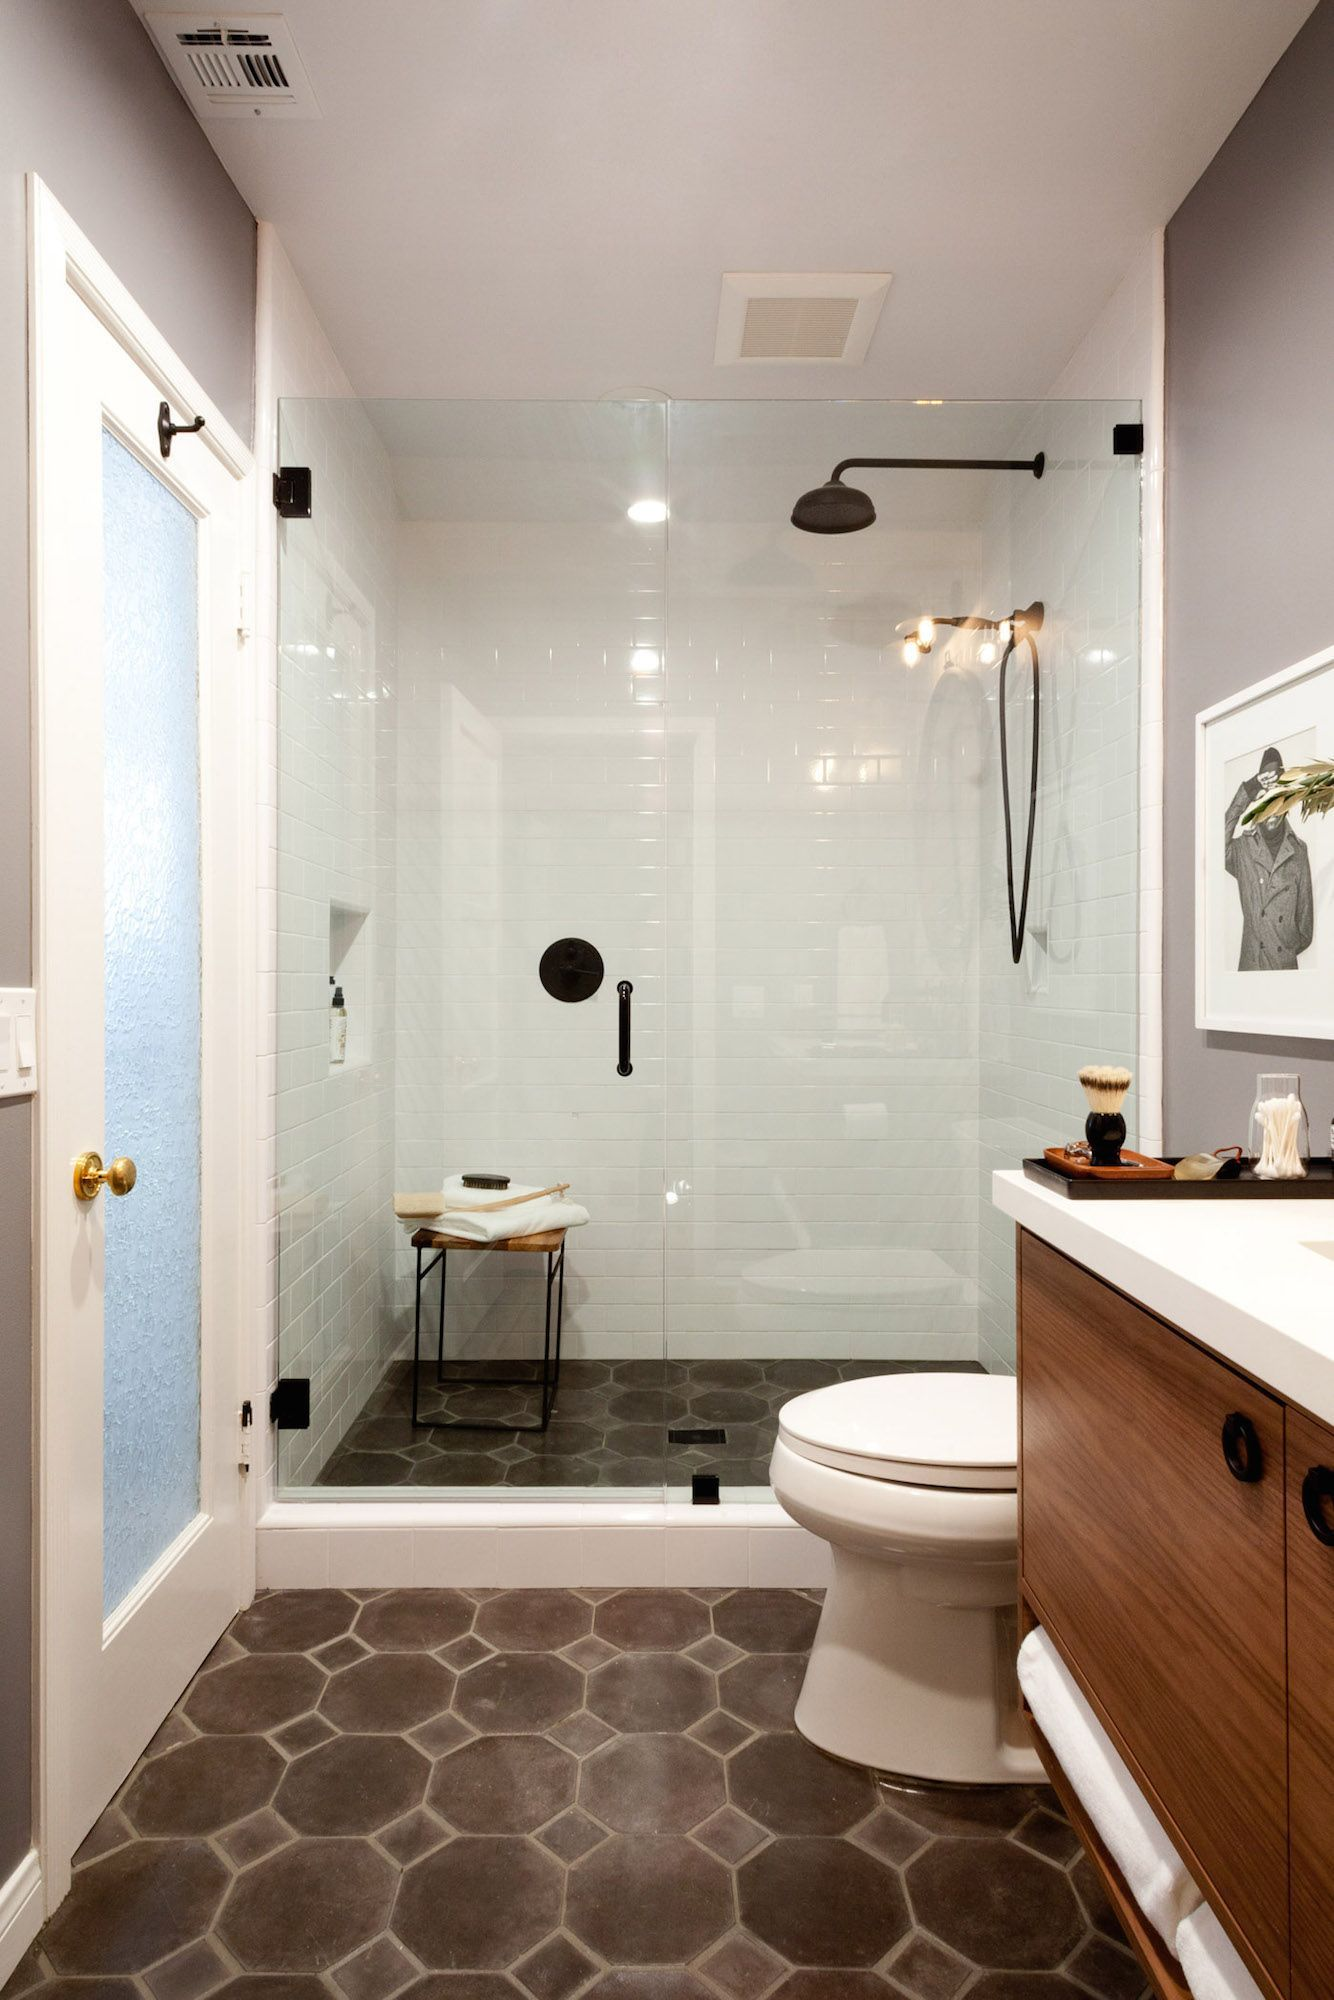 Feel Inspired By These Bathroom Tile Trends For 2019 7 Bathroom Tile Trends Feel Inspired By These Bathroom Tile Trends For 2019 Feel Inspired By These Bathroom Tile Trends For 2019 8